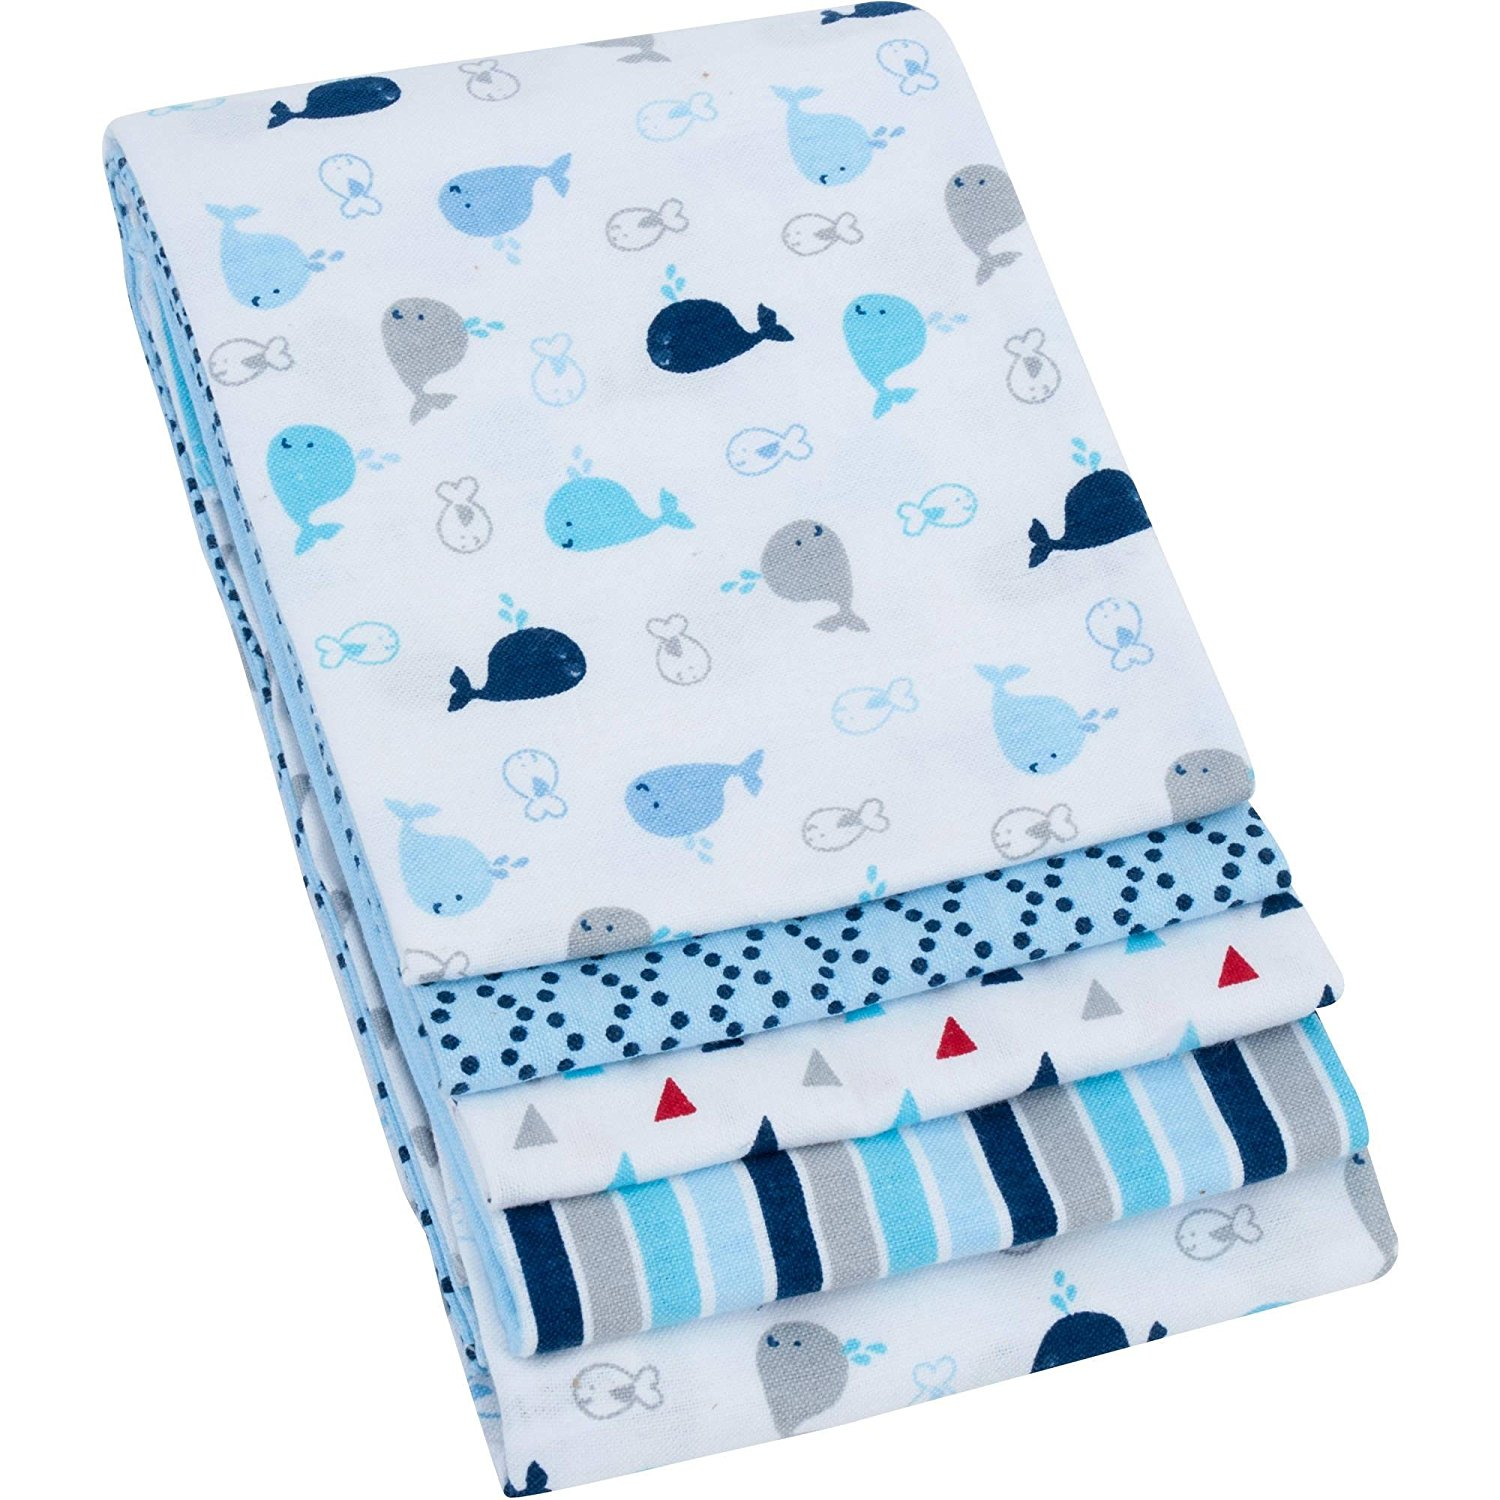 Brand New Garanimals 4-Pack Cotton Receiving Blankets, Blue, High-quality by Allena